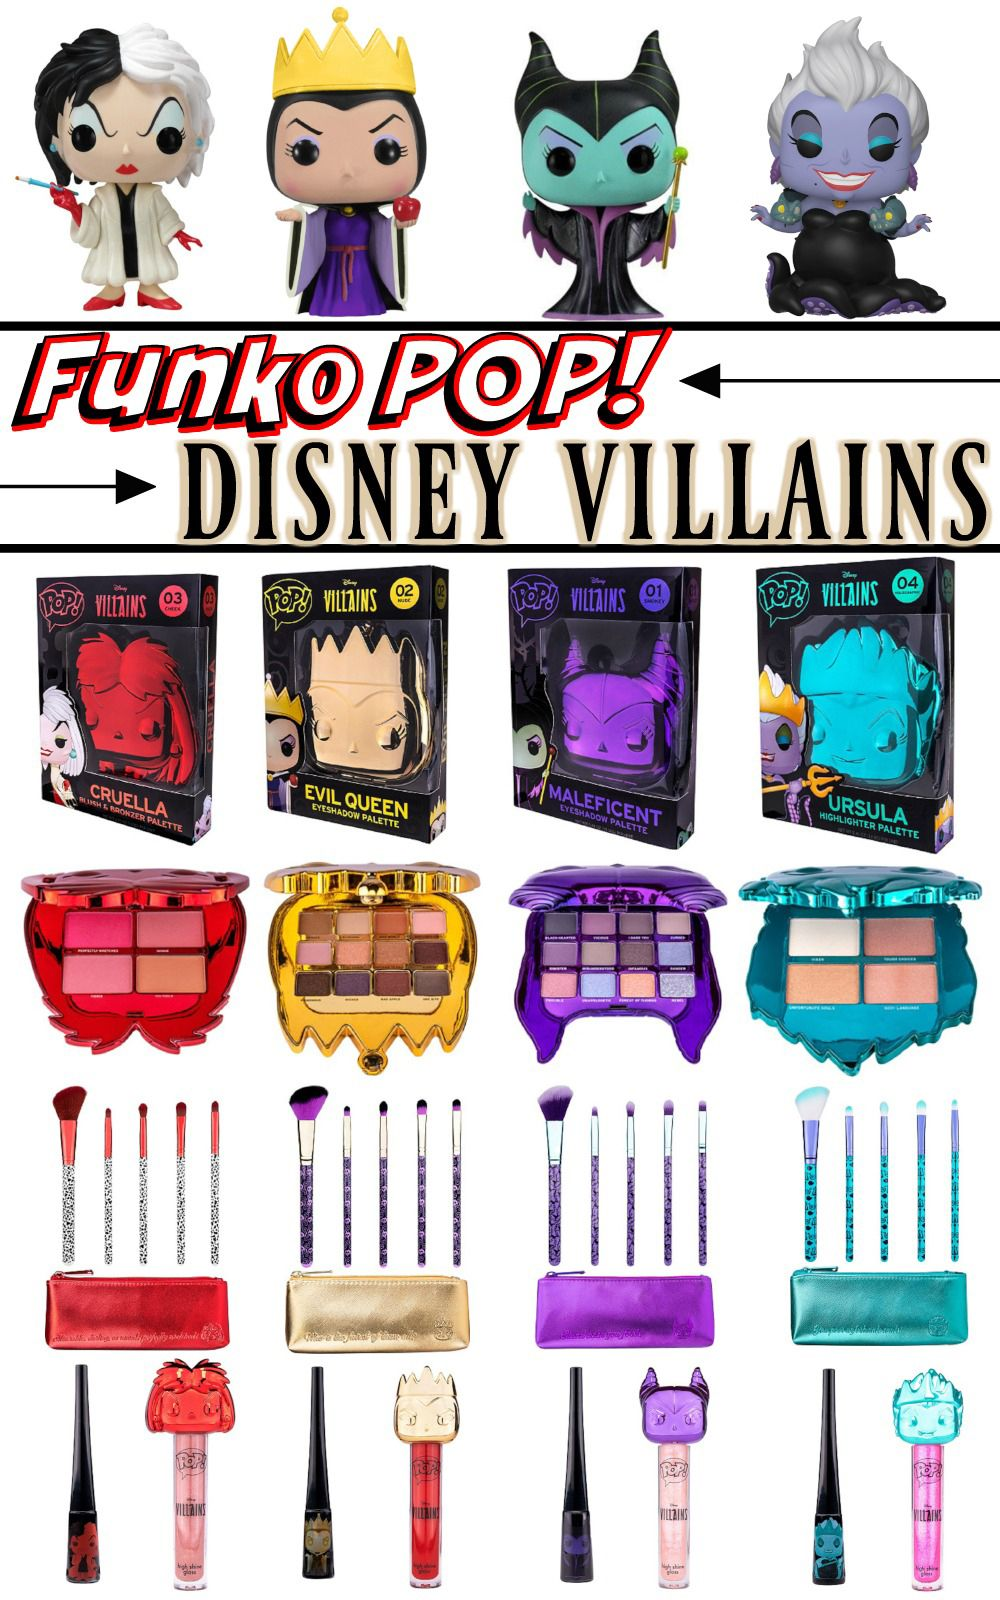 Funko POP x Disney Villains Makeup Collection Product Info